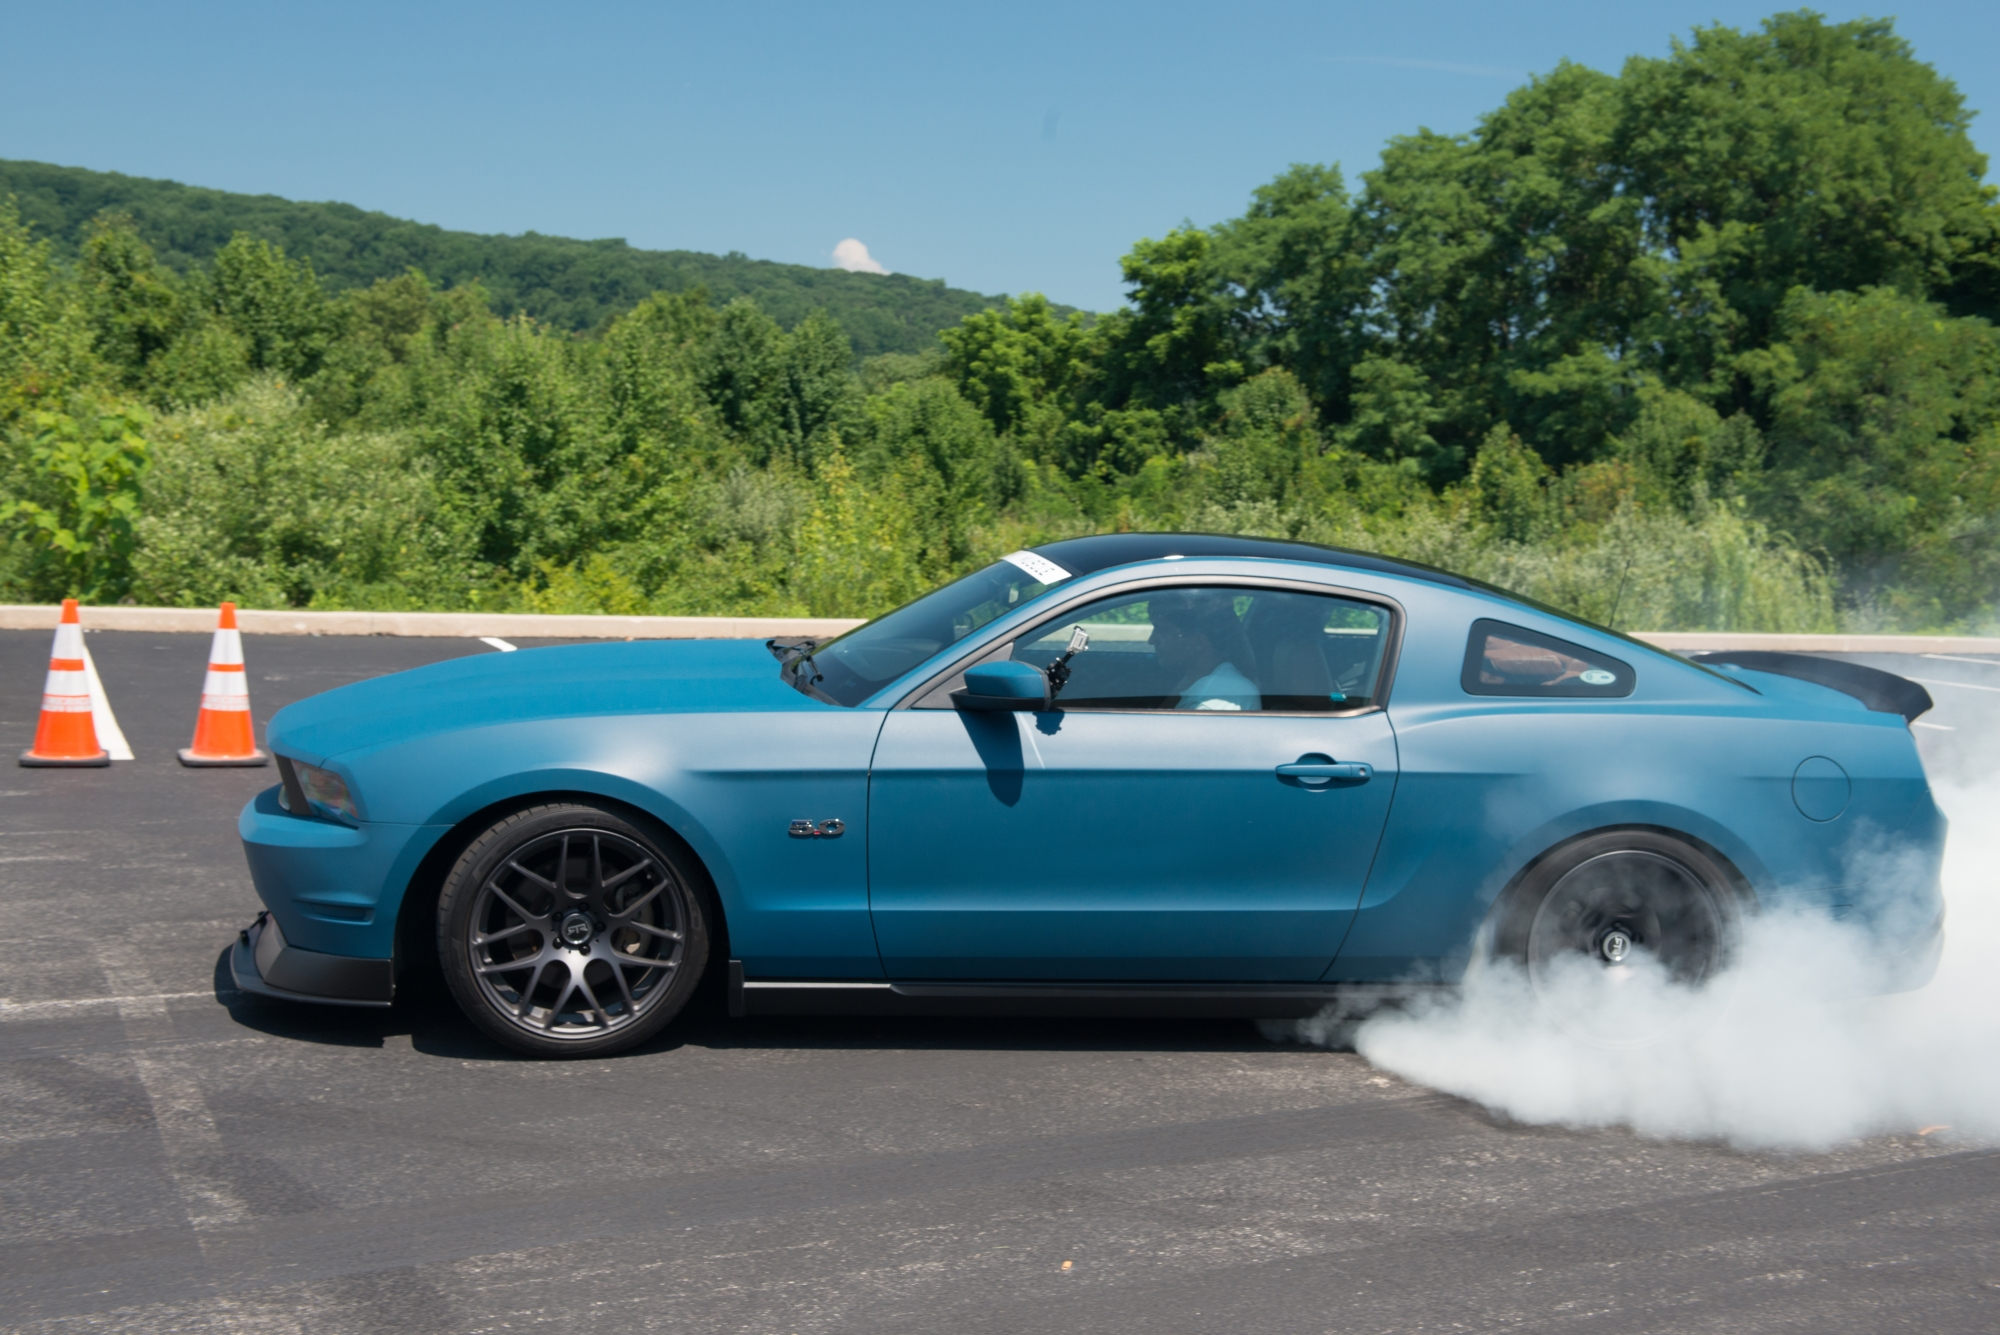 Top 10 Quickest Factory-Built Mustangs – AmericanMuscle.com Blog